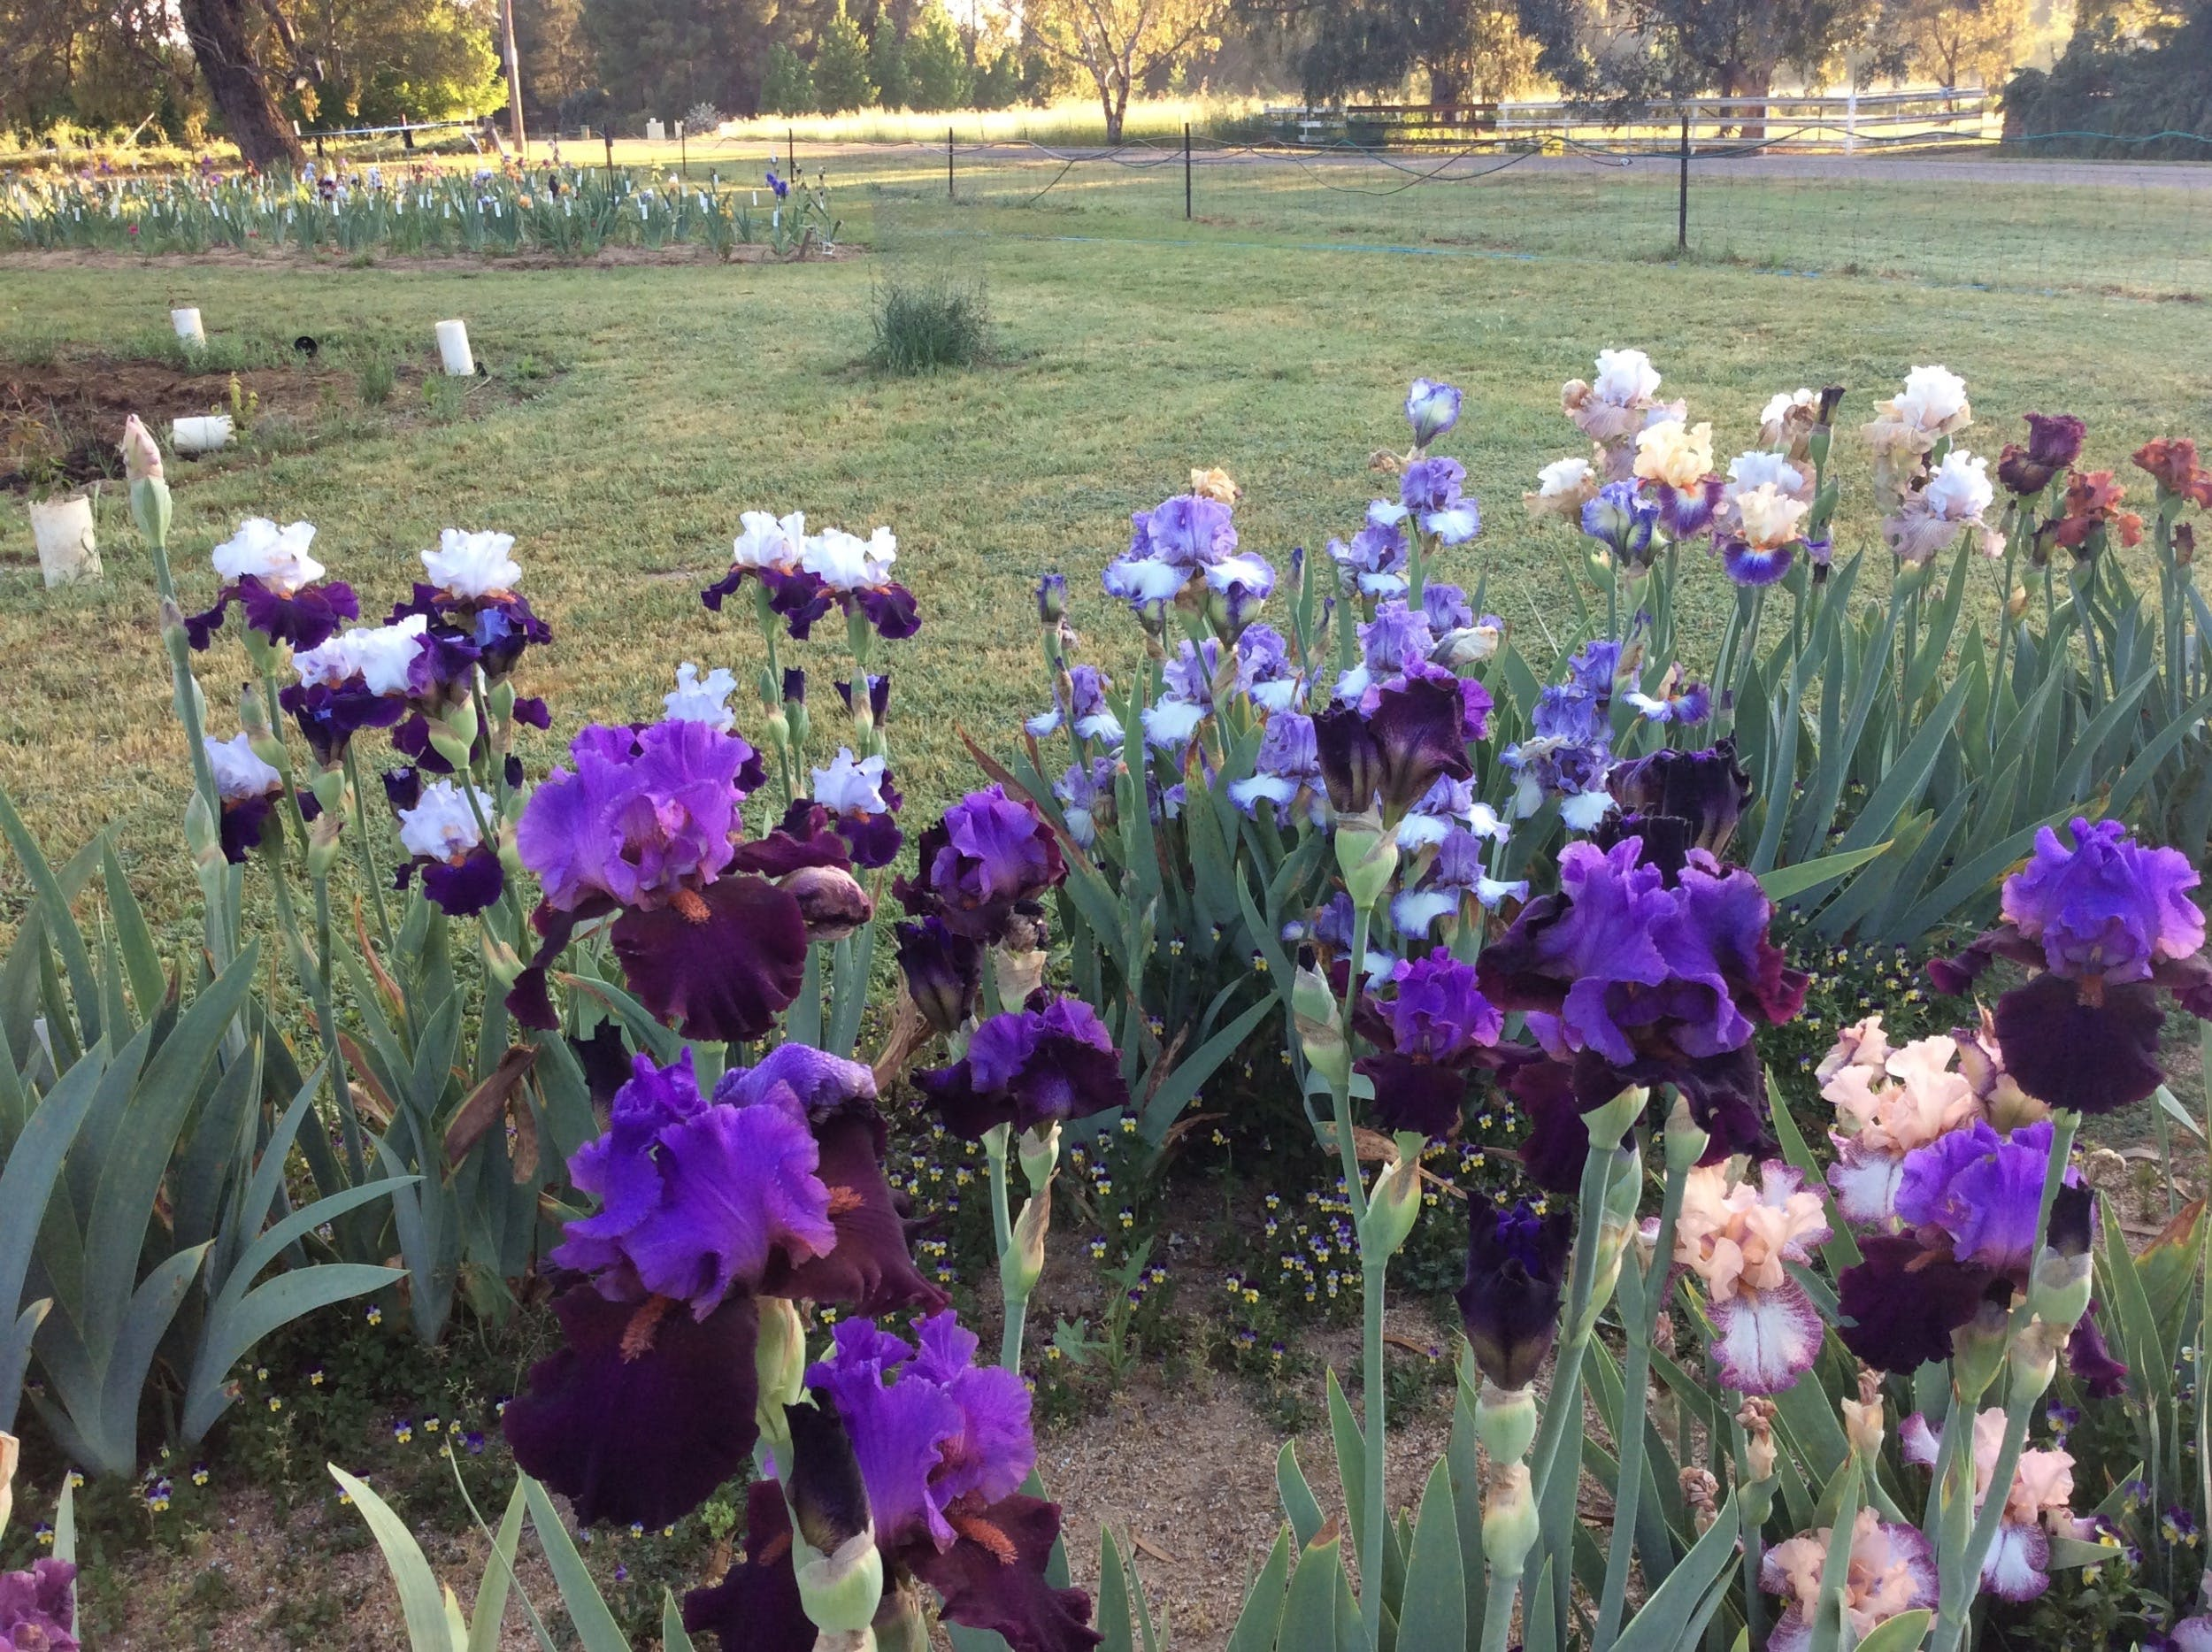 Riverina Iris Farm Open Garden and Iris Display - Townsville Tourism